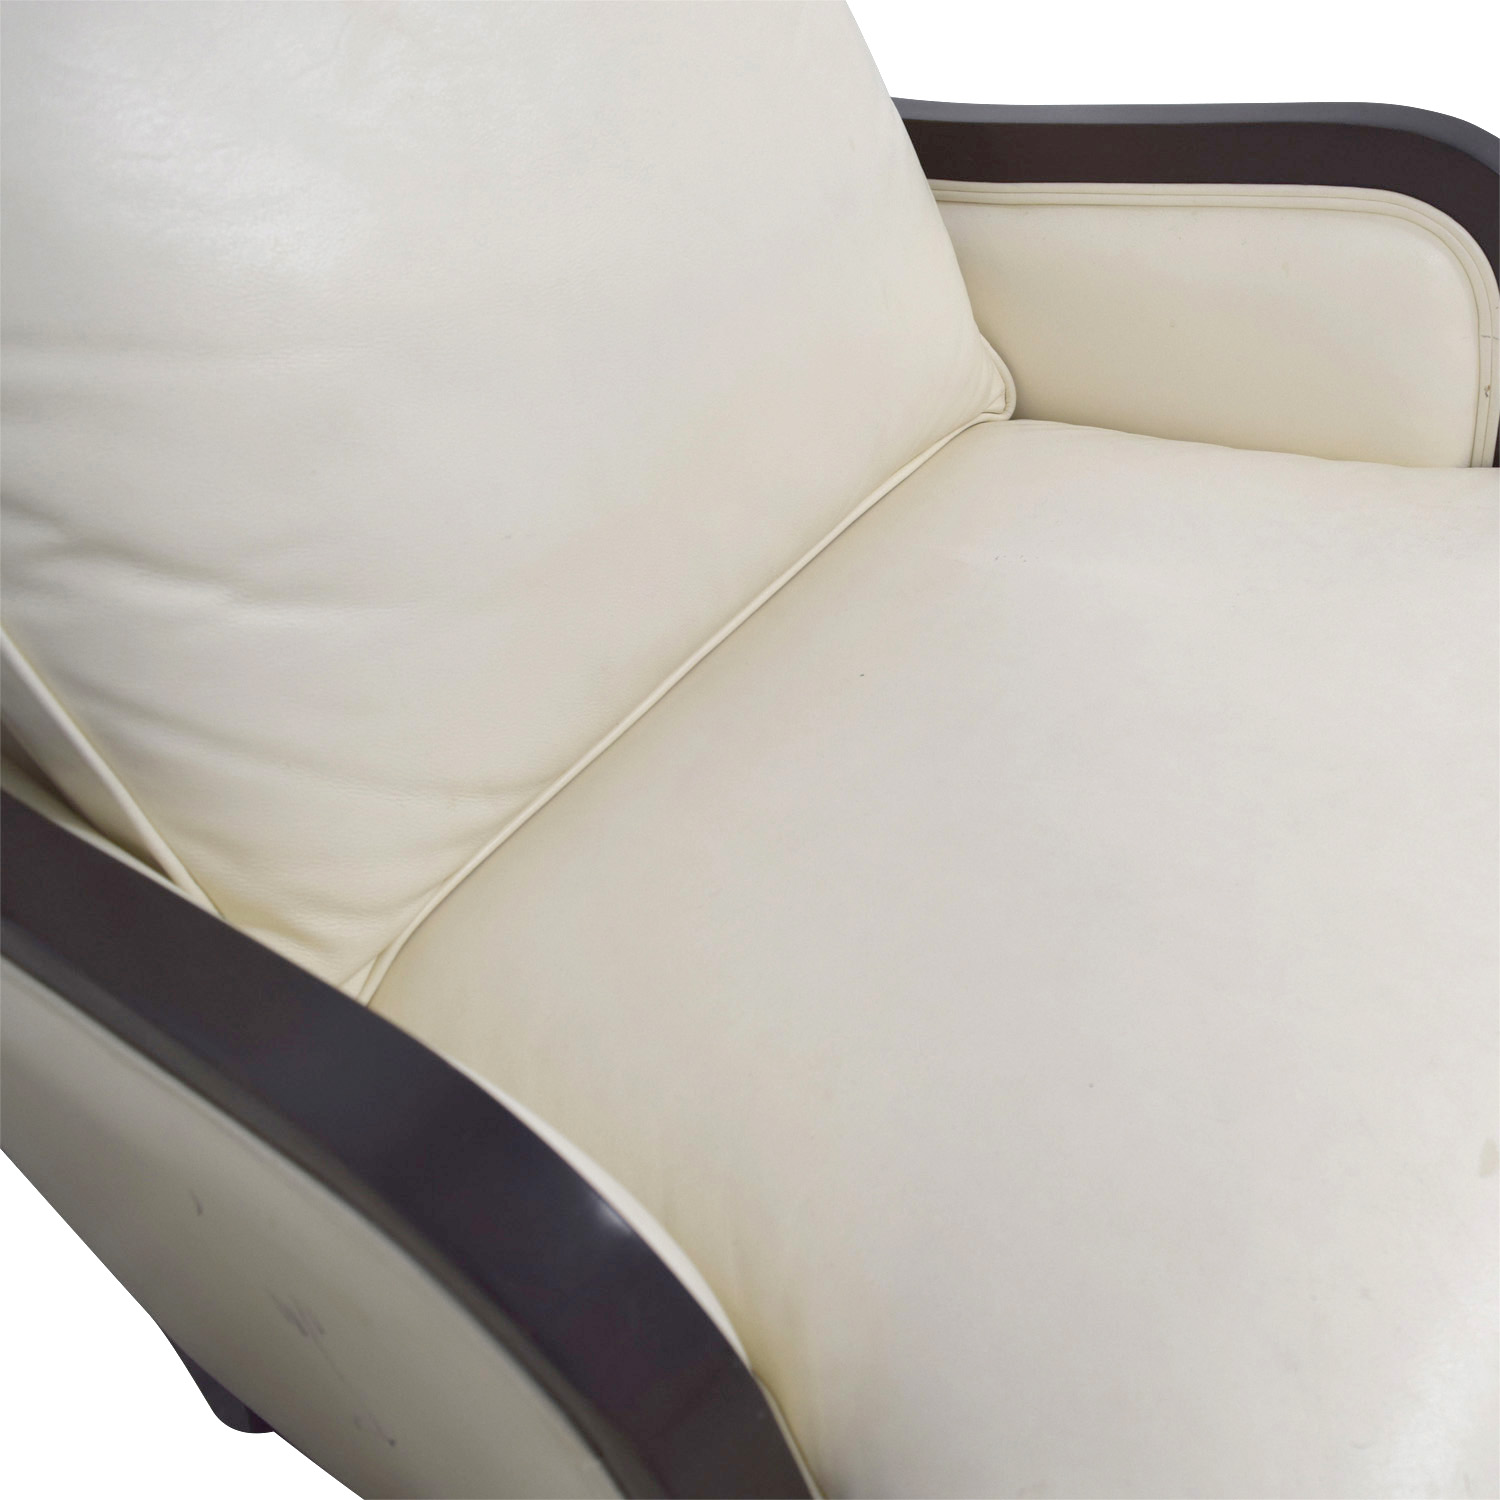 shop Ethan Allen Ethan Allen Palma Ivory Leather Chairs with Ottomans online